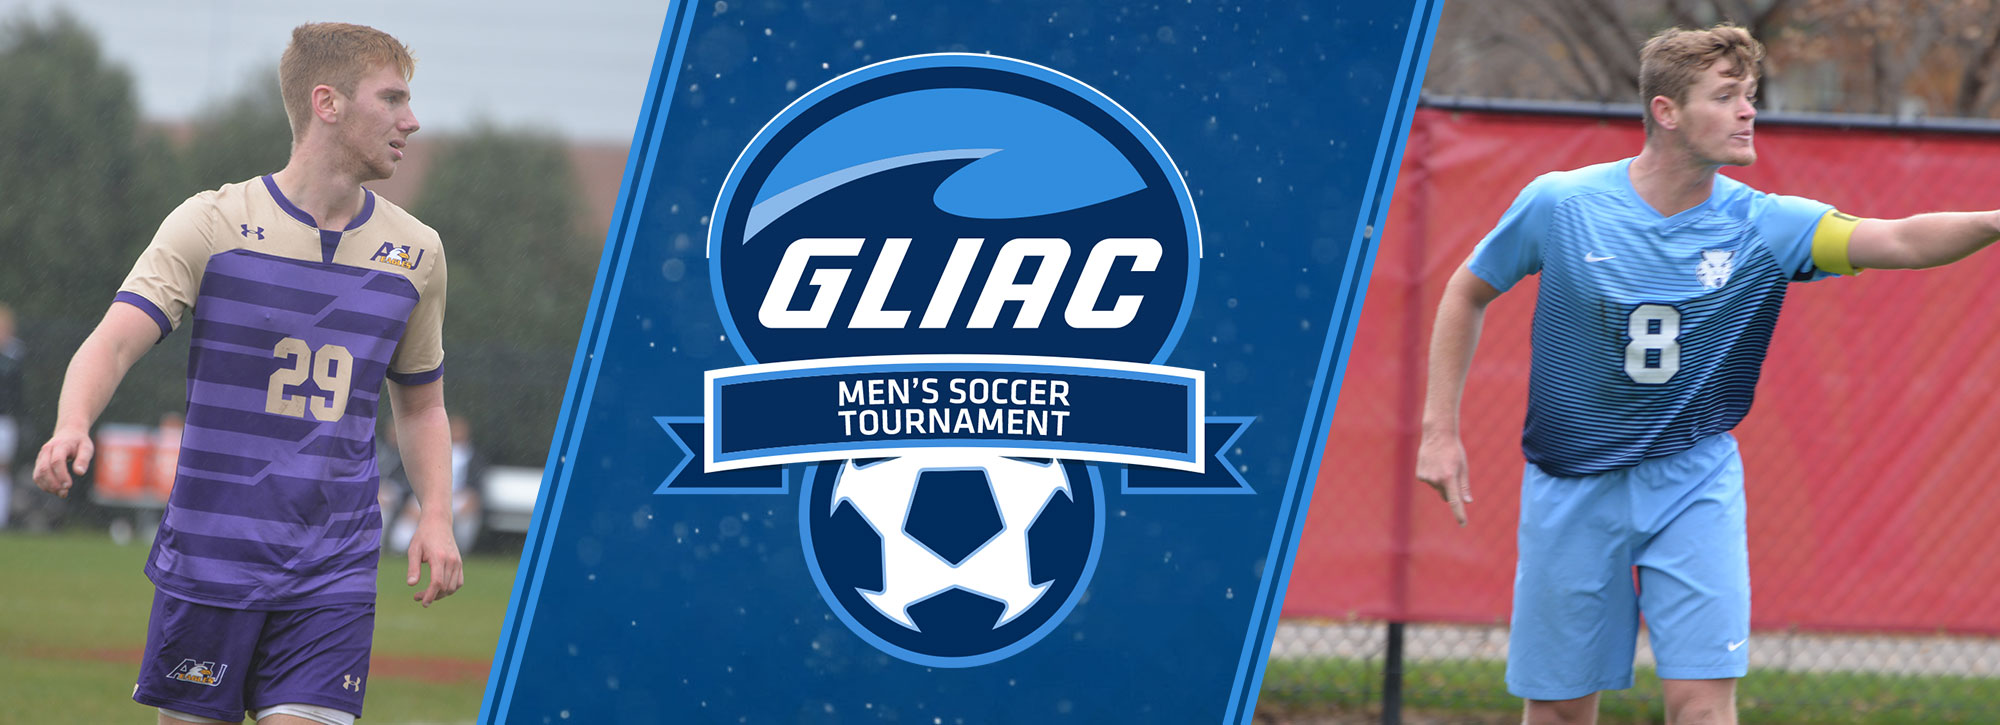 Northwood, Ashland Advance to Sunday's GLIAC Men's Soccer Tournament Championship